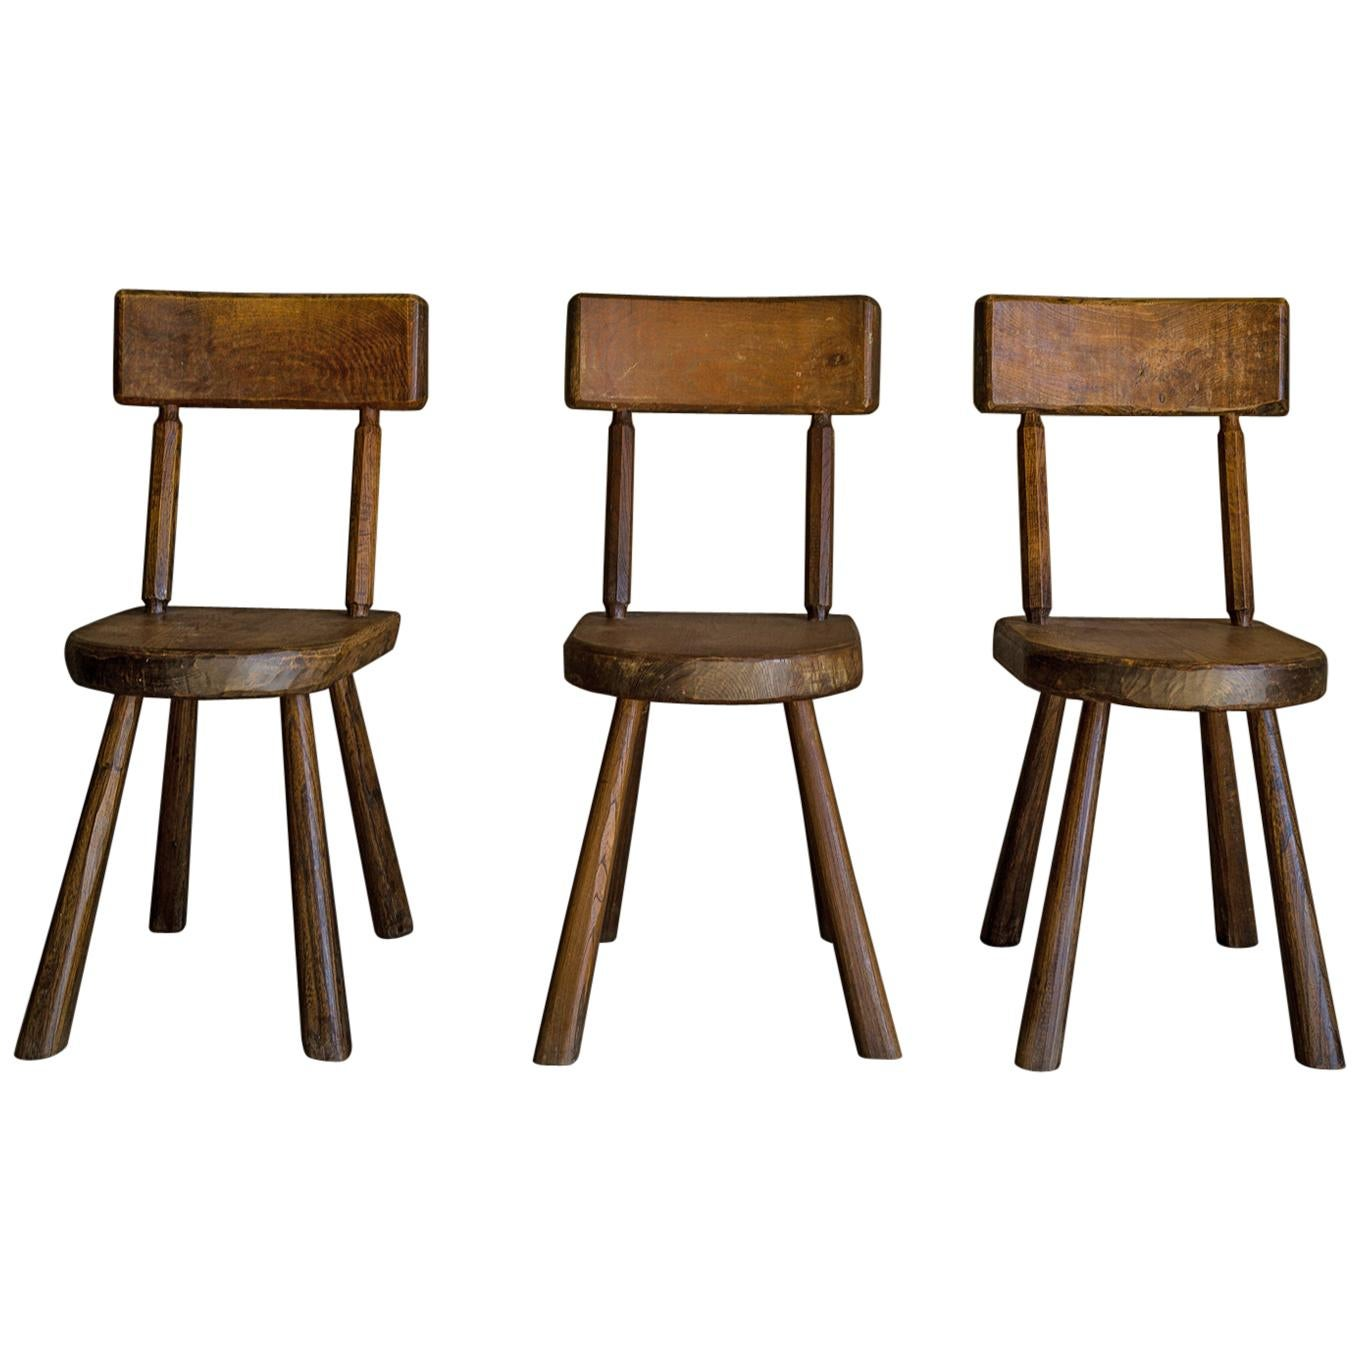 Set of Three Vintage Oak Chairs from France, circa 1950